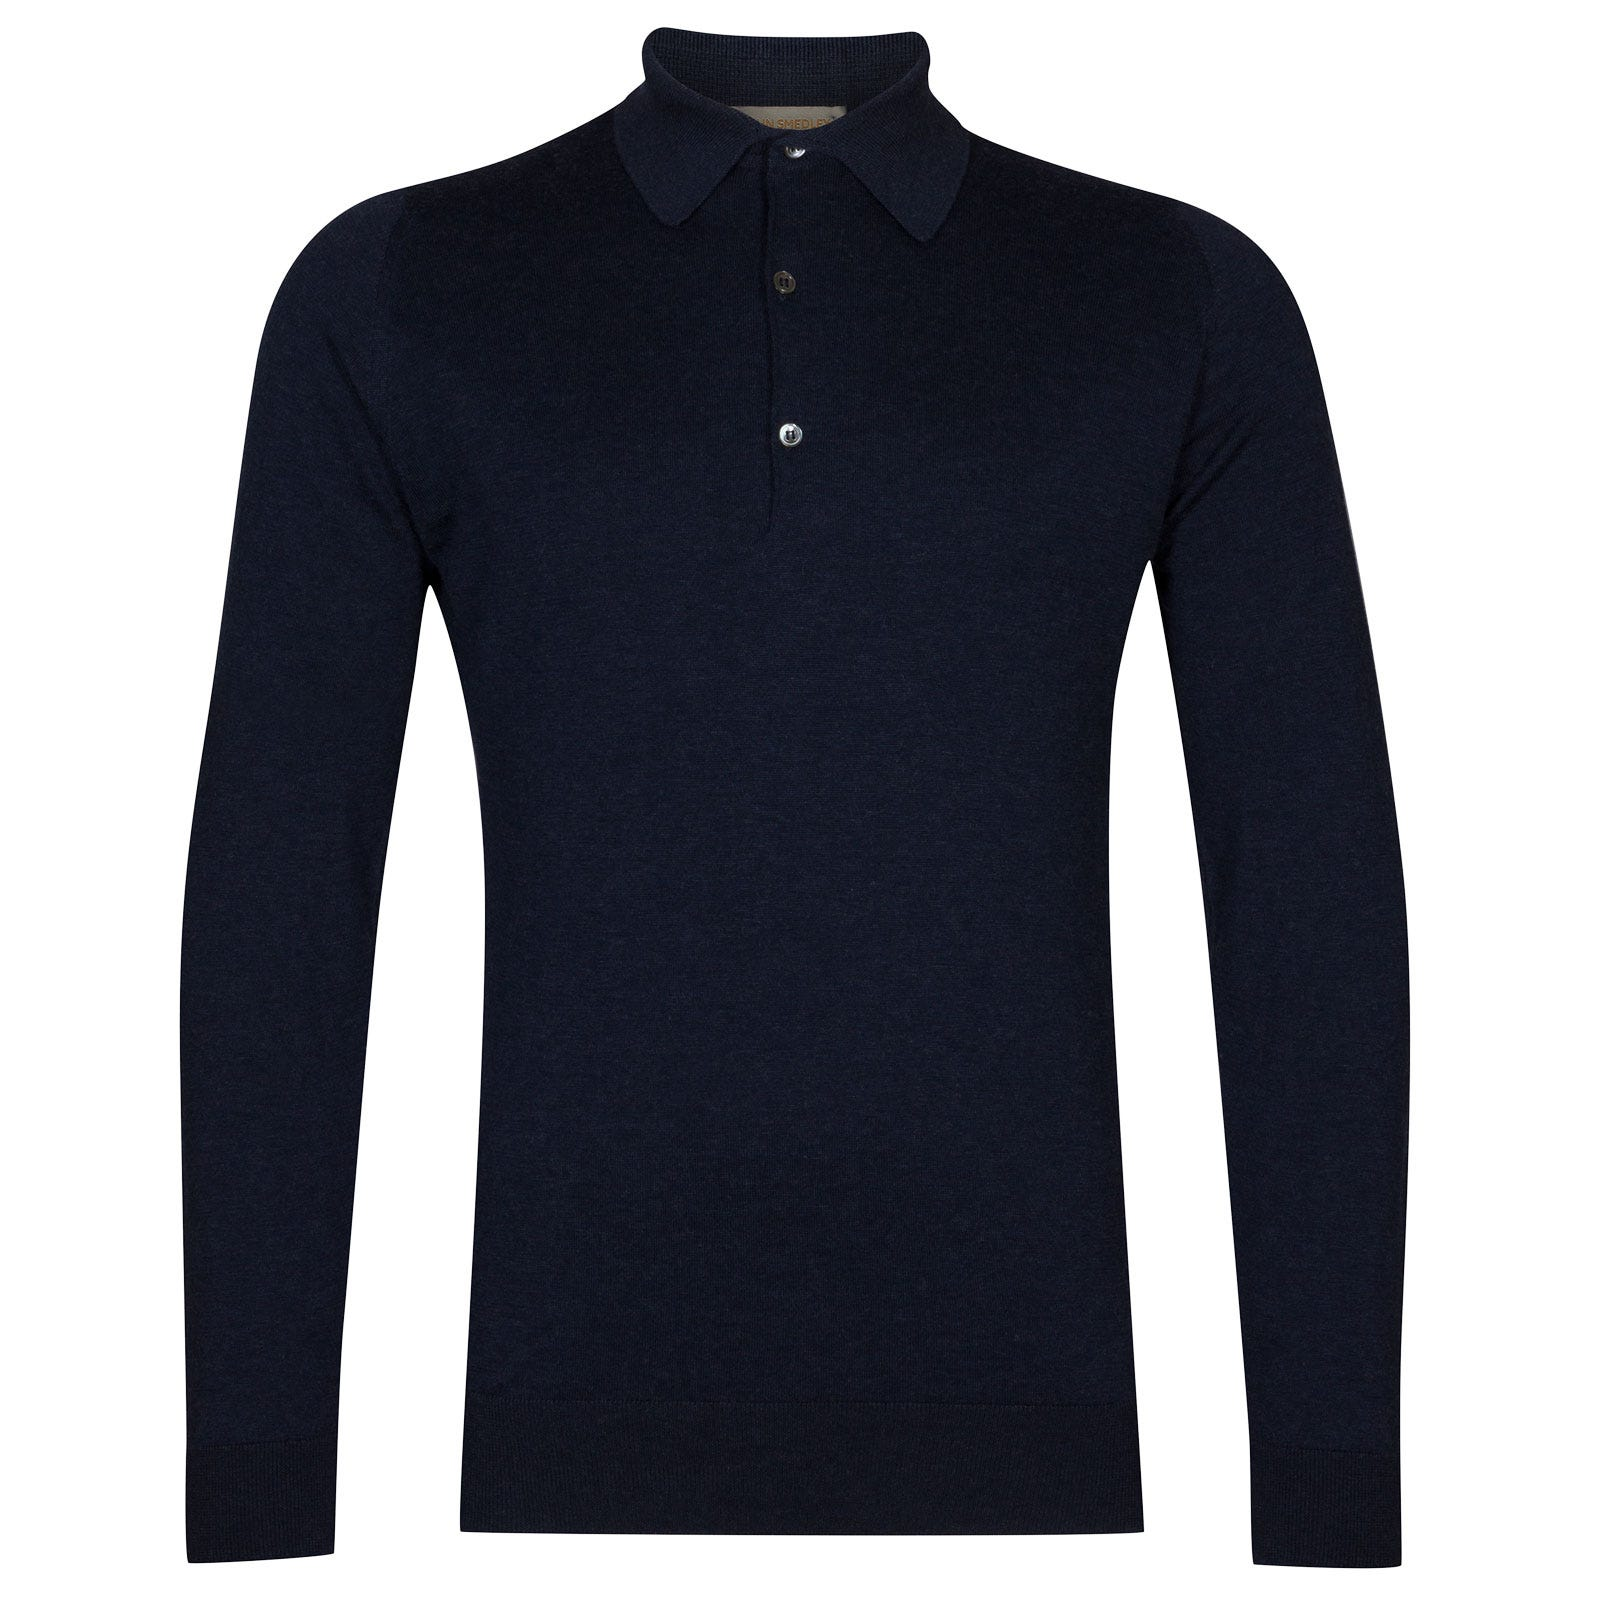 John Smedley lanlay Sea Island Cotton and Cashmere Shirt in Indigo-S